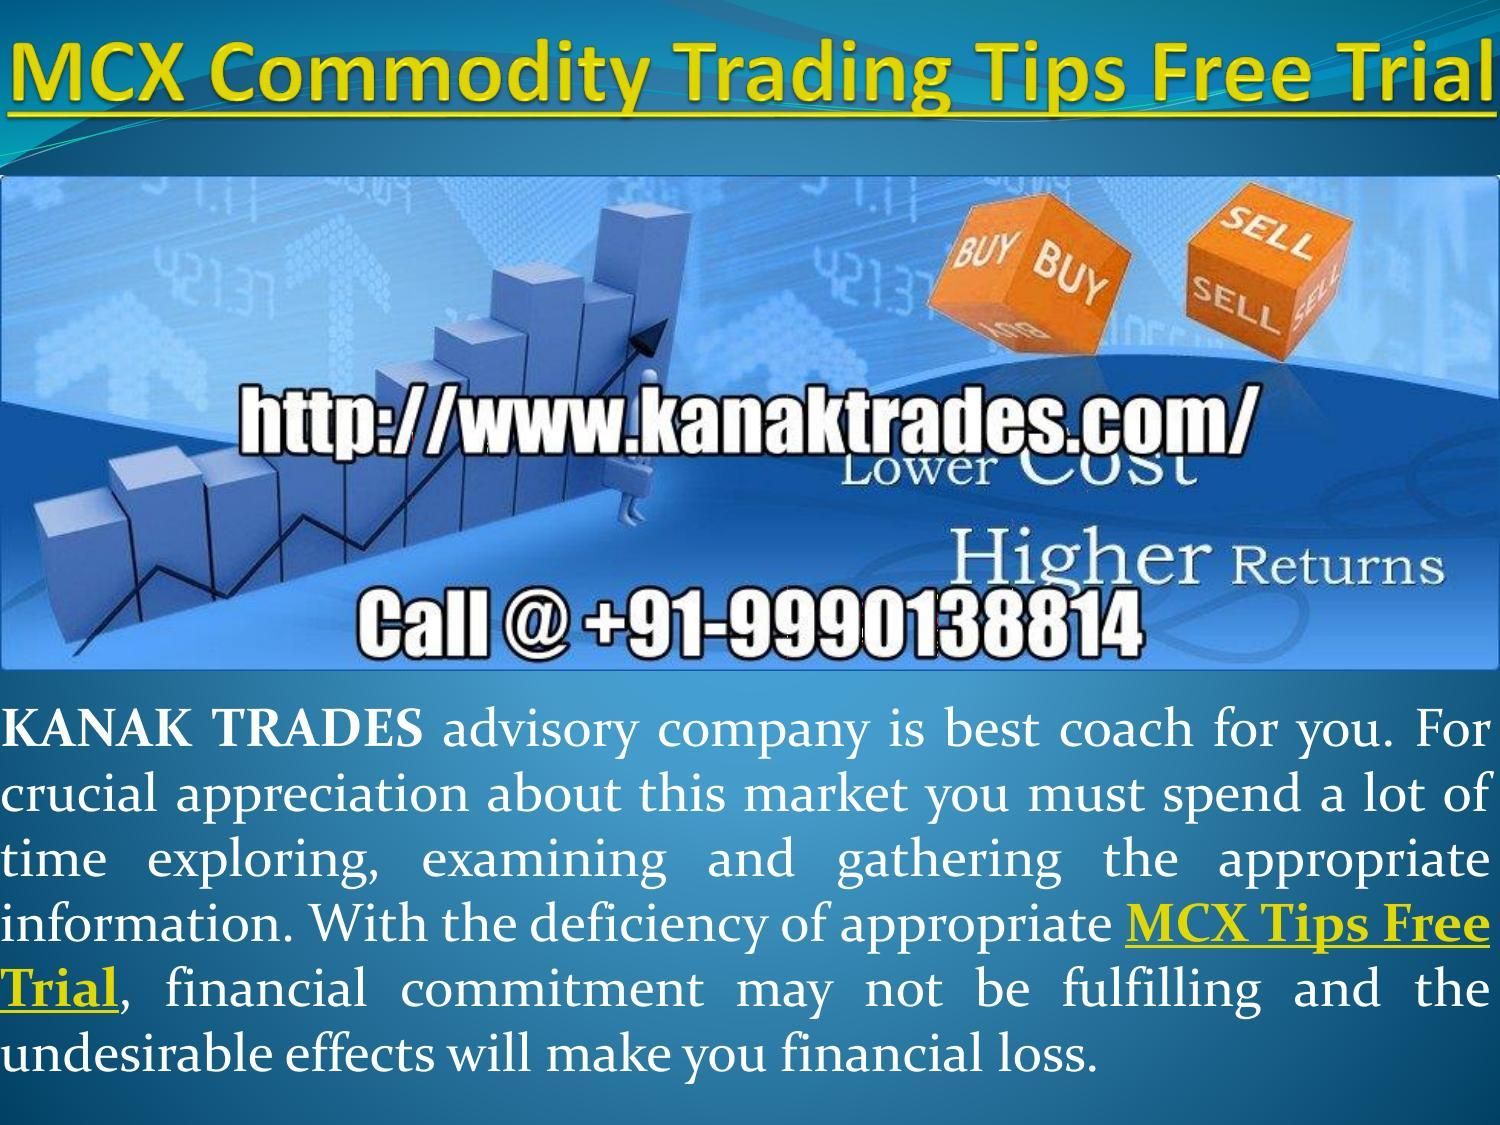 Mcx commodity trading tips free trial | silver tips free